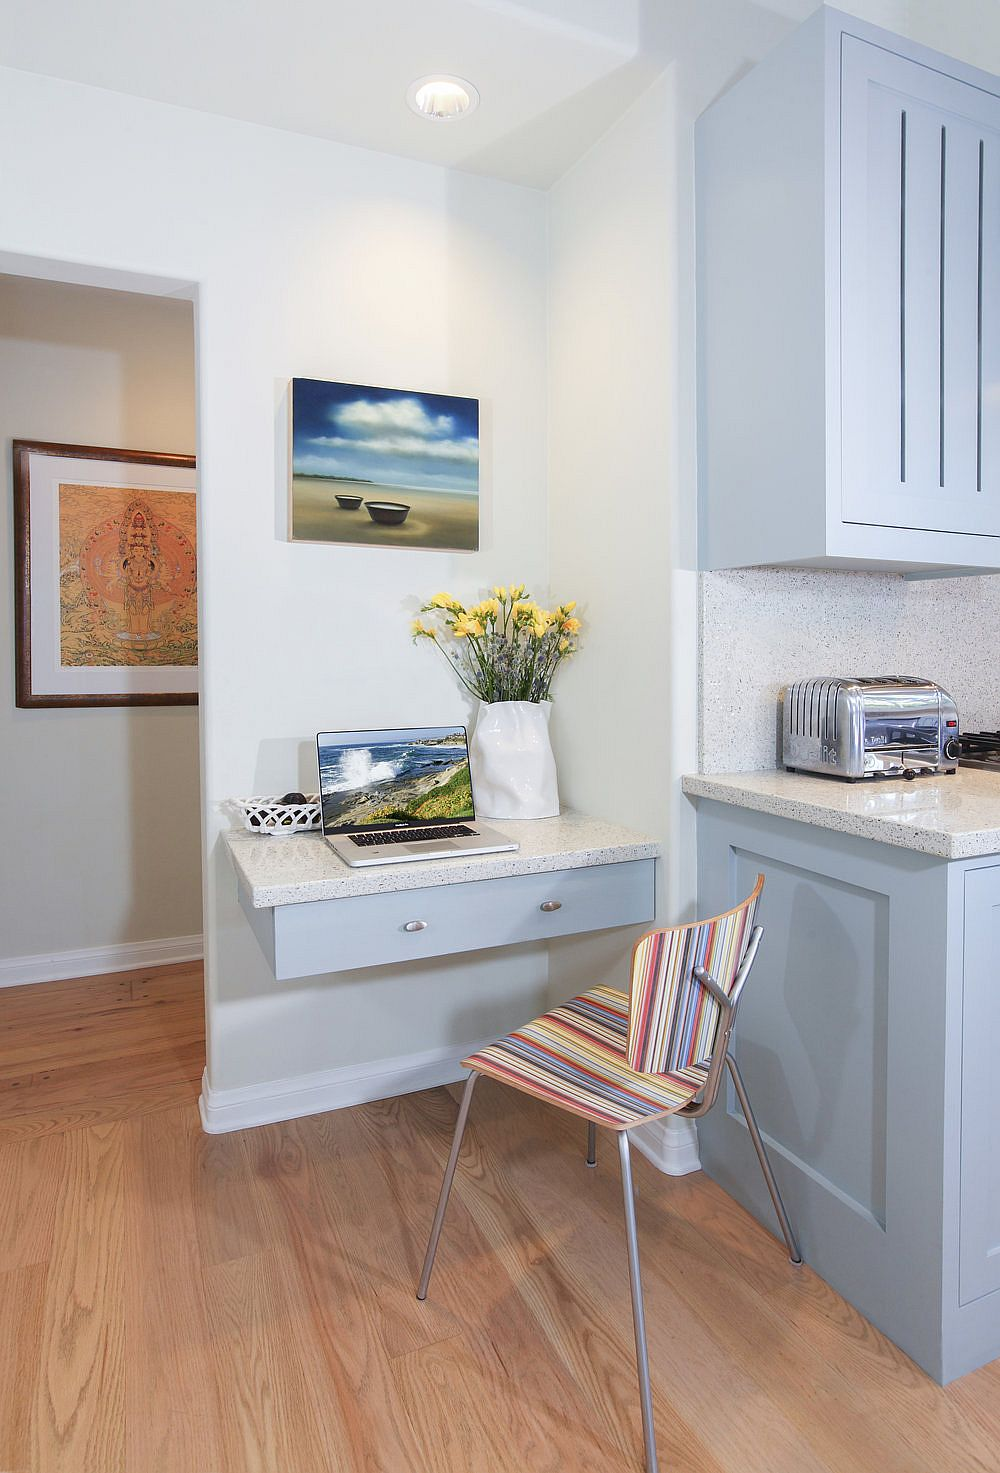 Smart-and-space-savvy-workspace-in-the-kitchen-created-using-a-floating-drawer-in-the-corner-55343